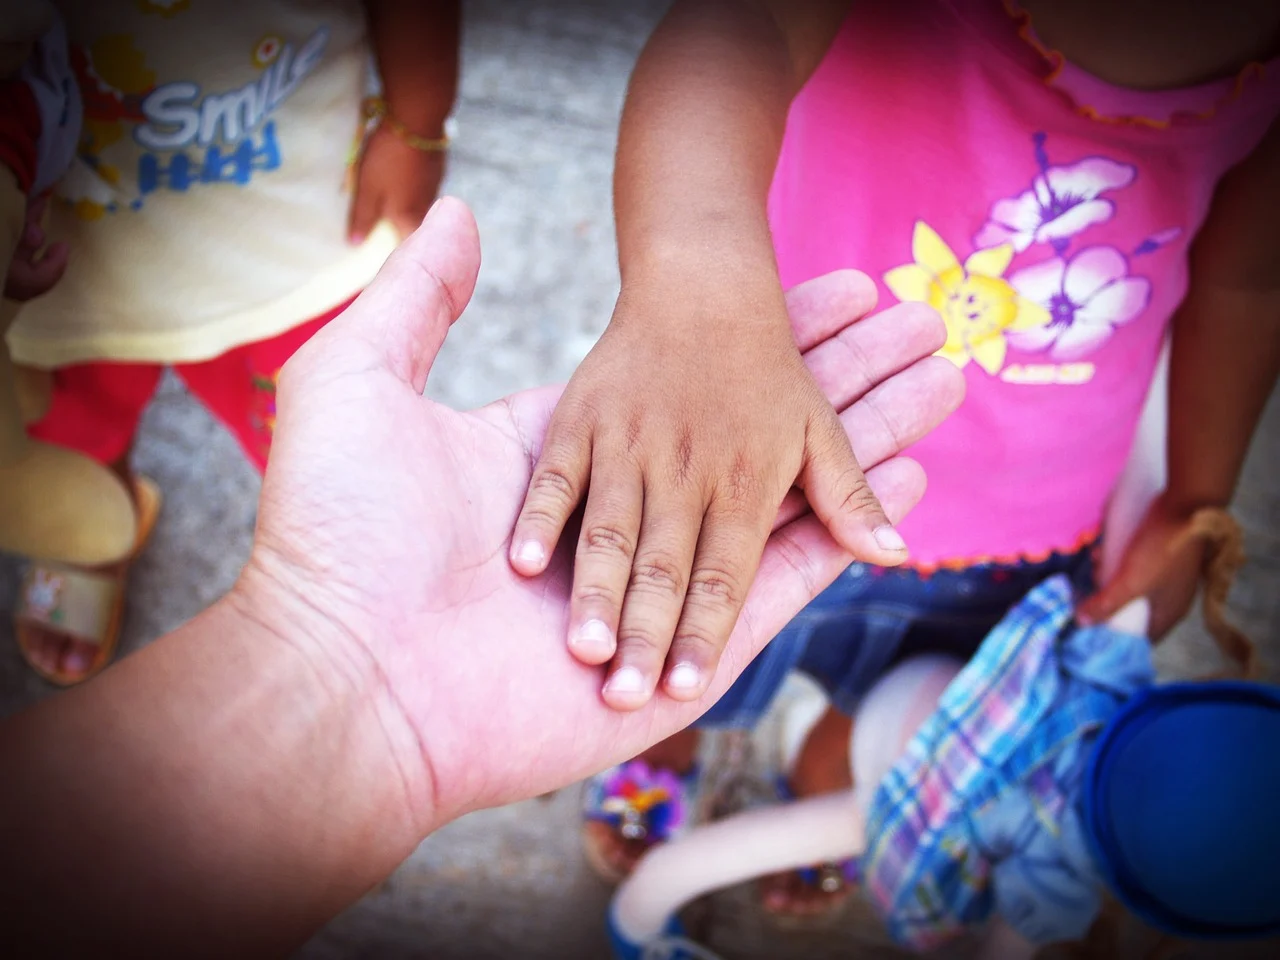 An adult holding hands with a small child.